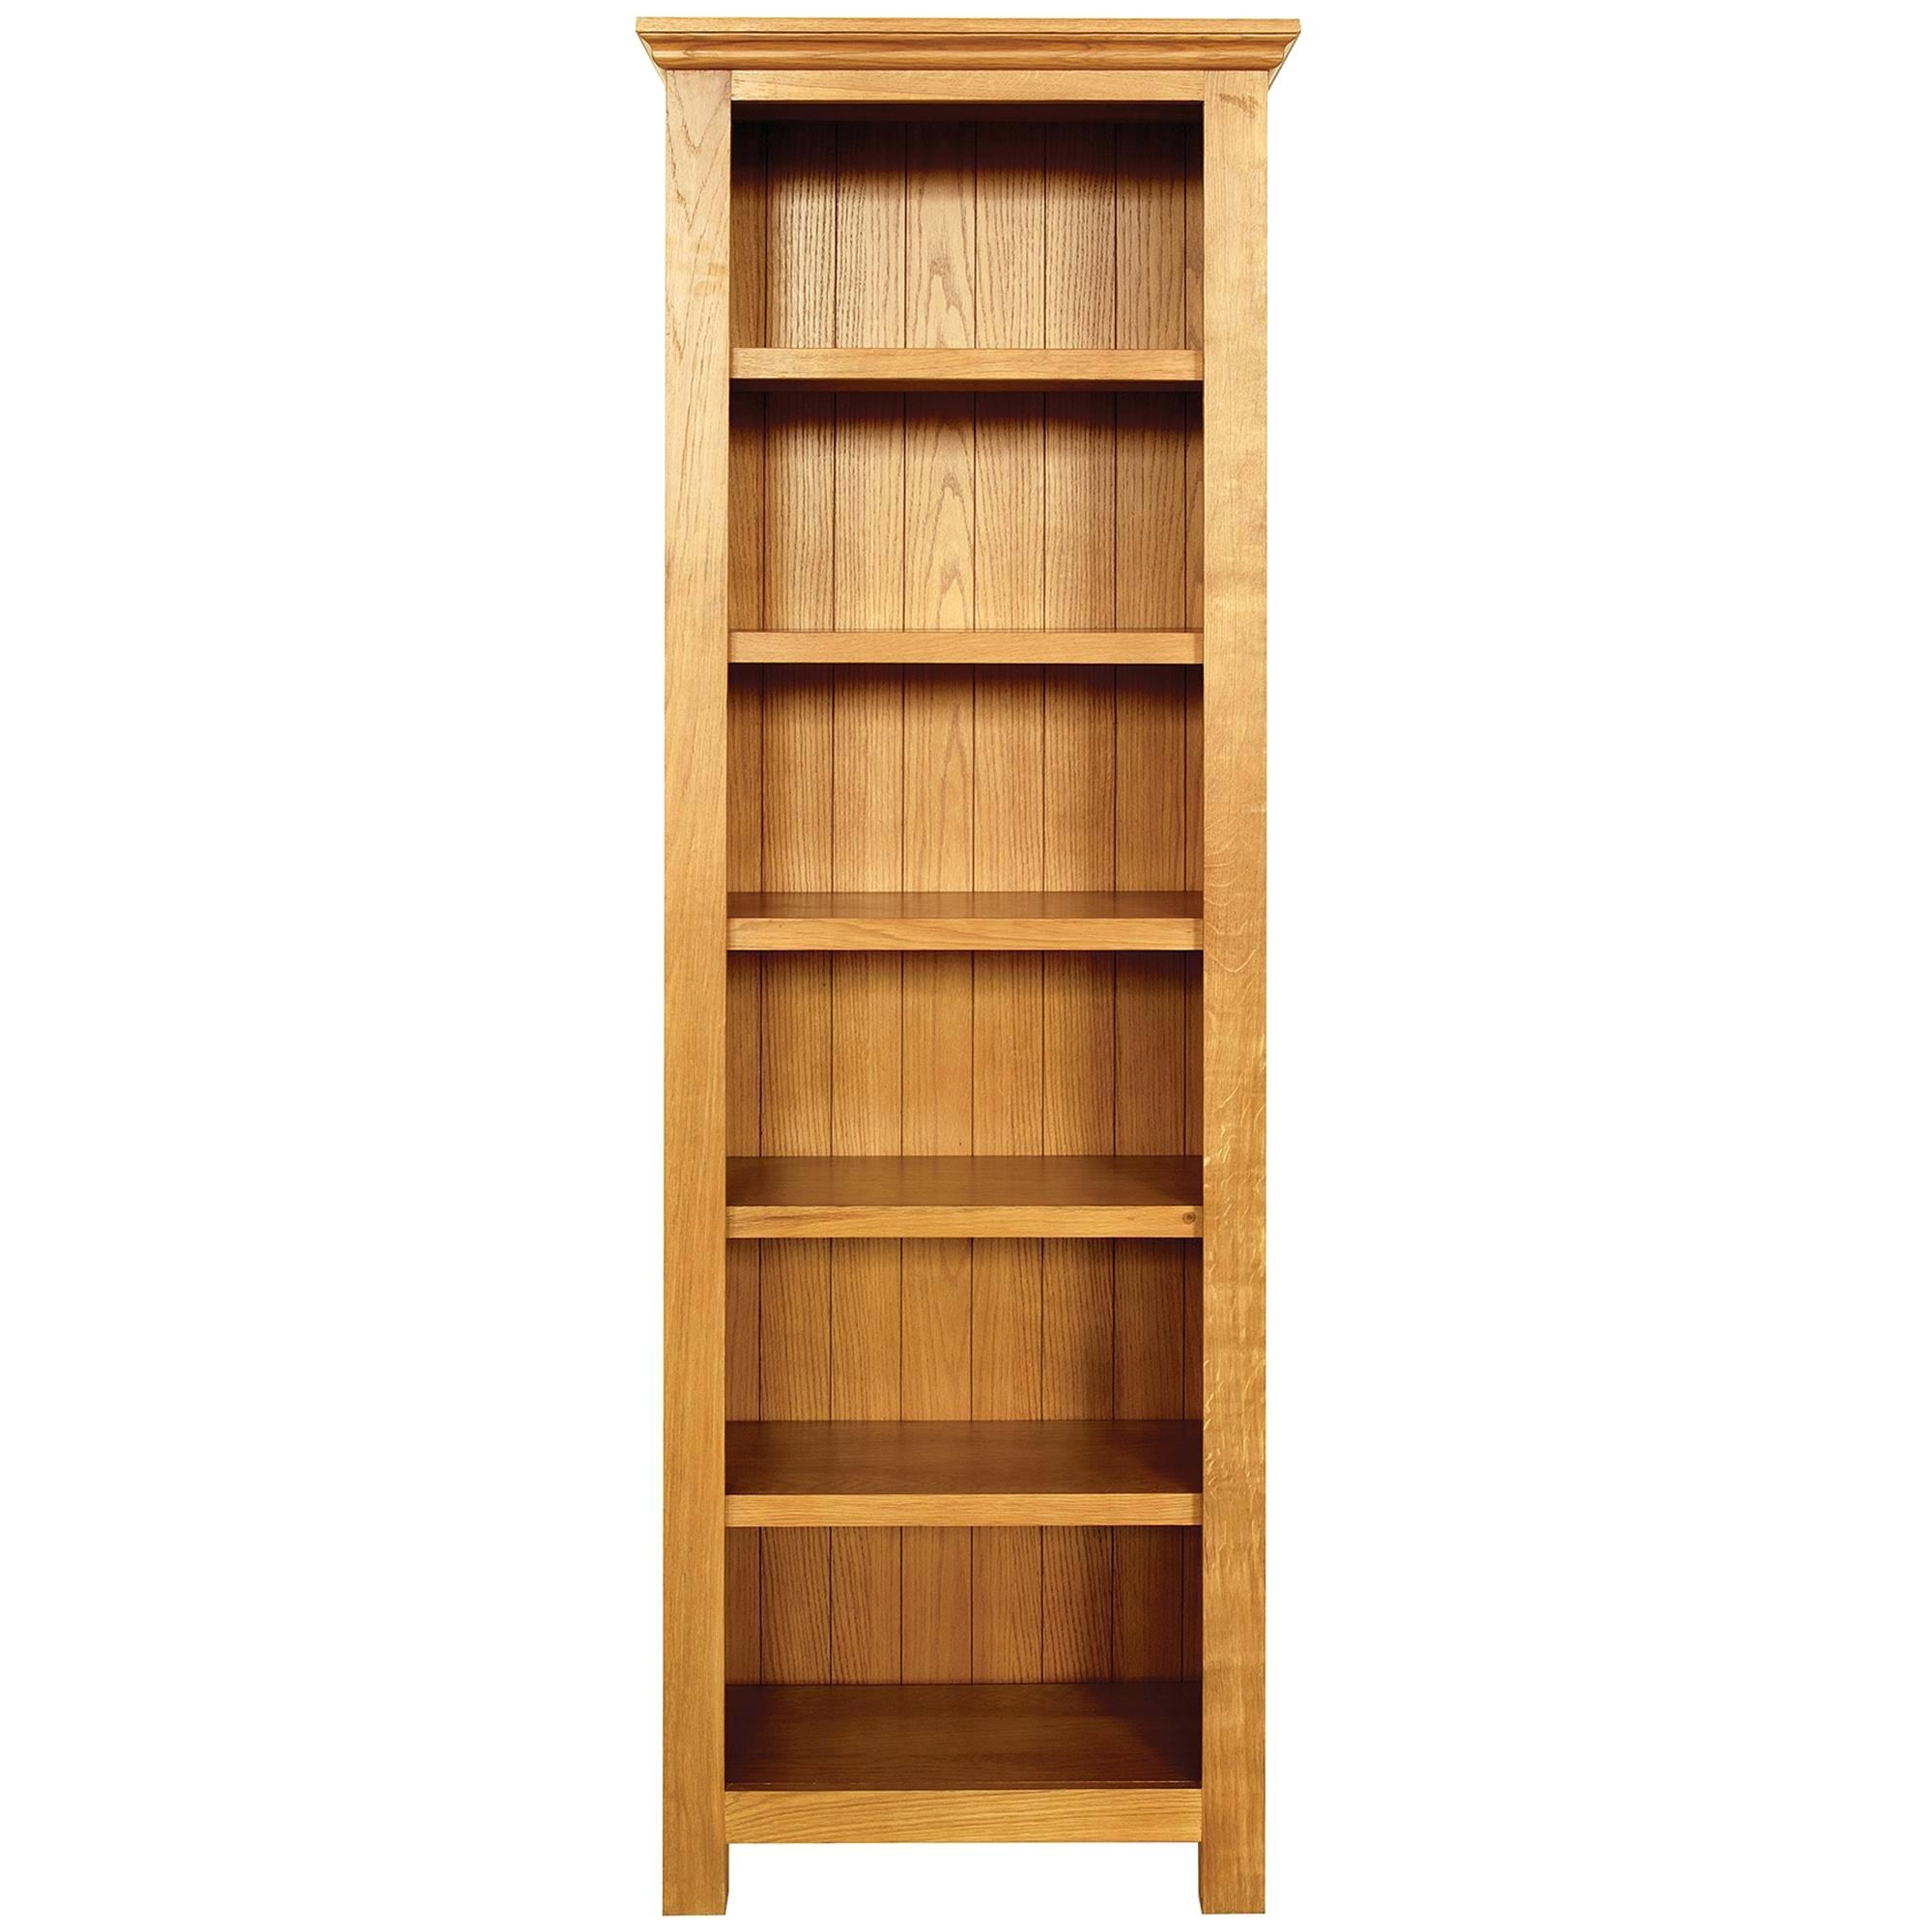 Wooden Bookcases In 2018 Solid Wood Bookcases With Glass Doors Wooden Bookcase Plans Wood (View 12 of 15)